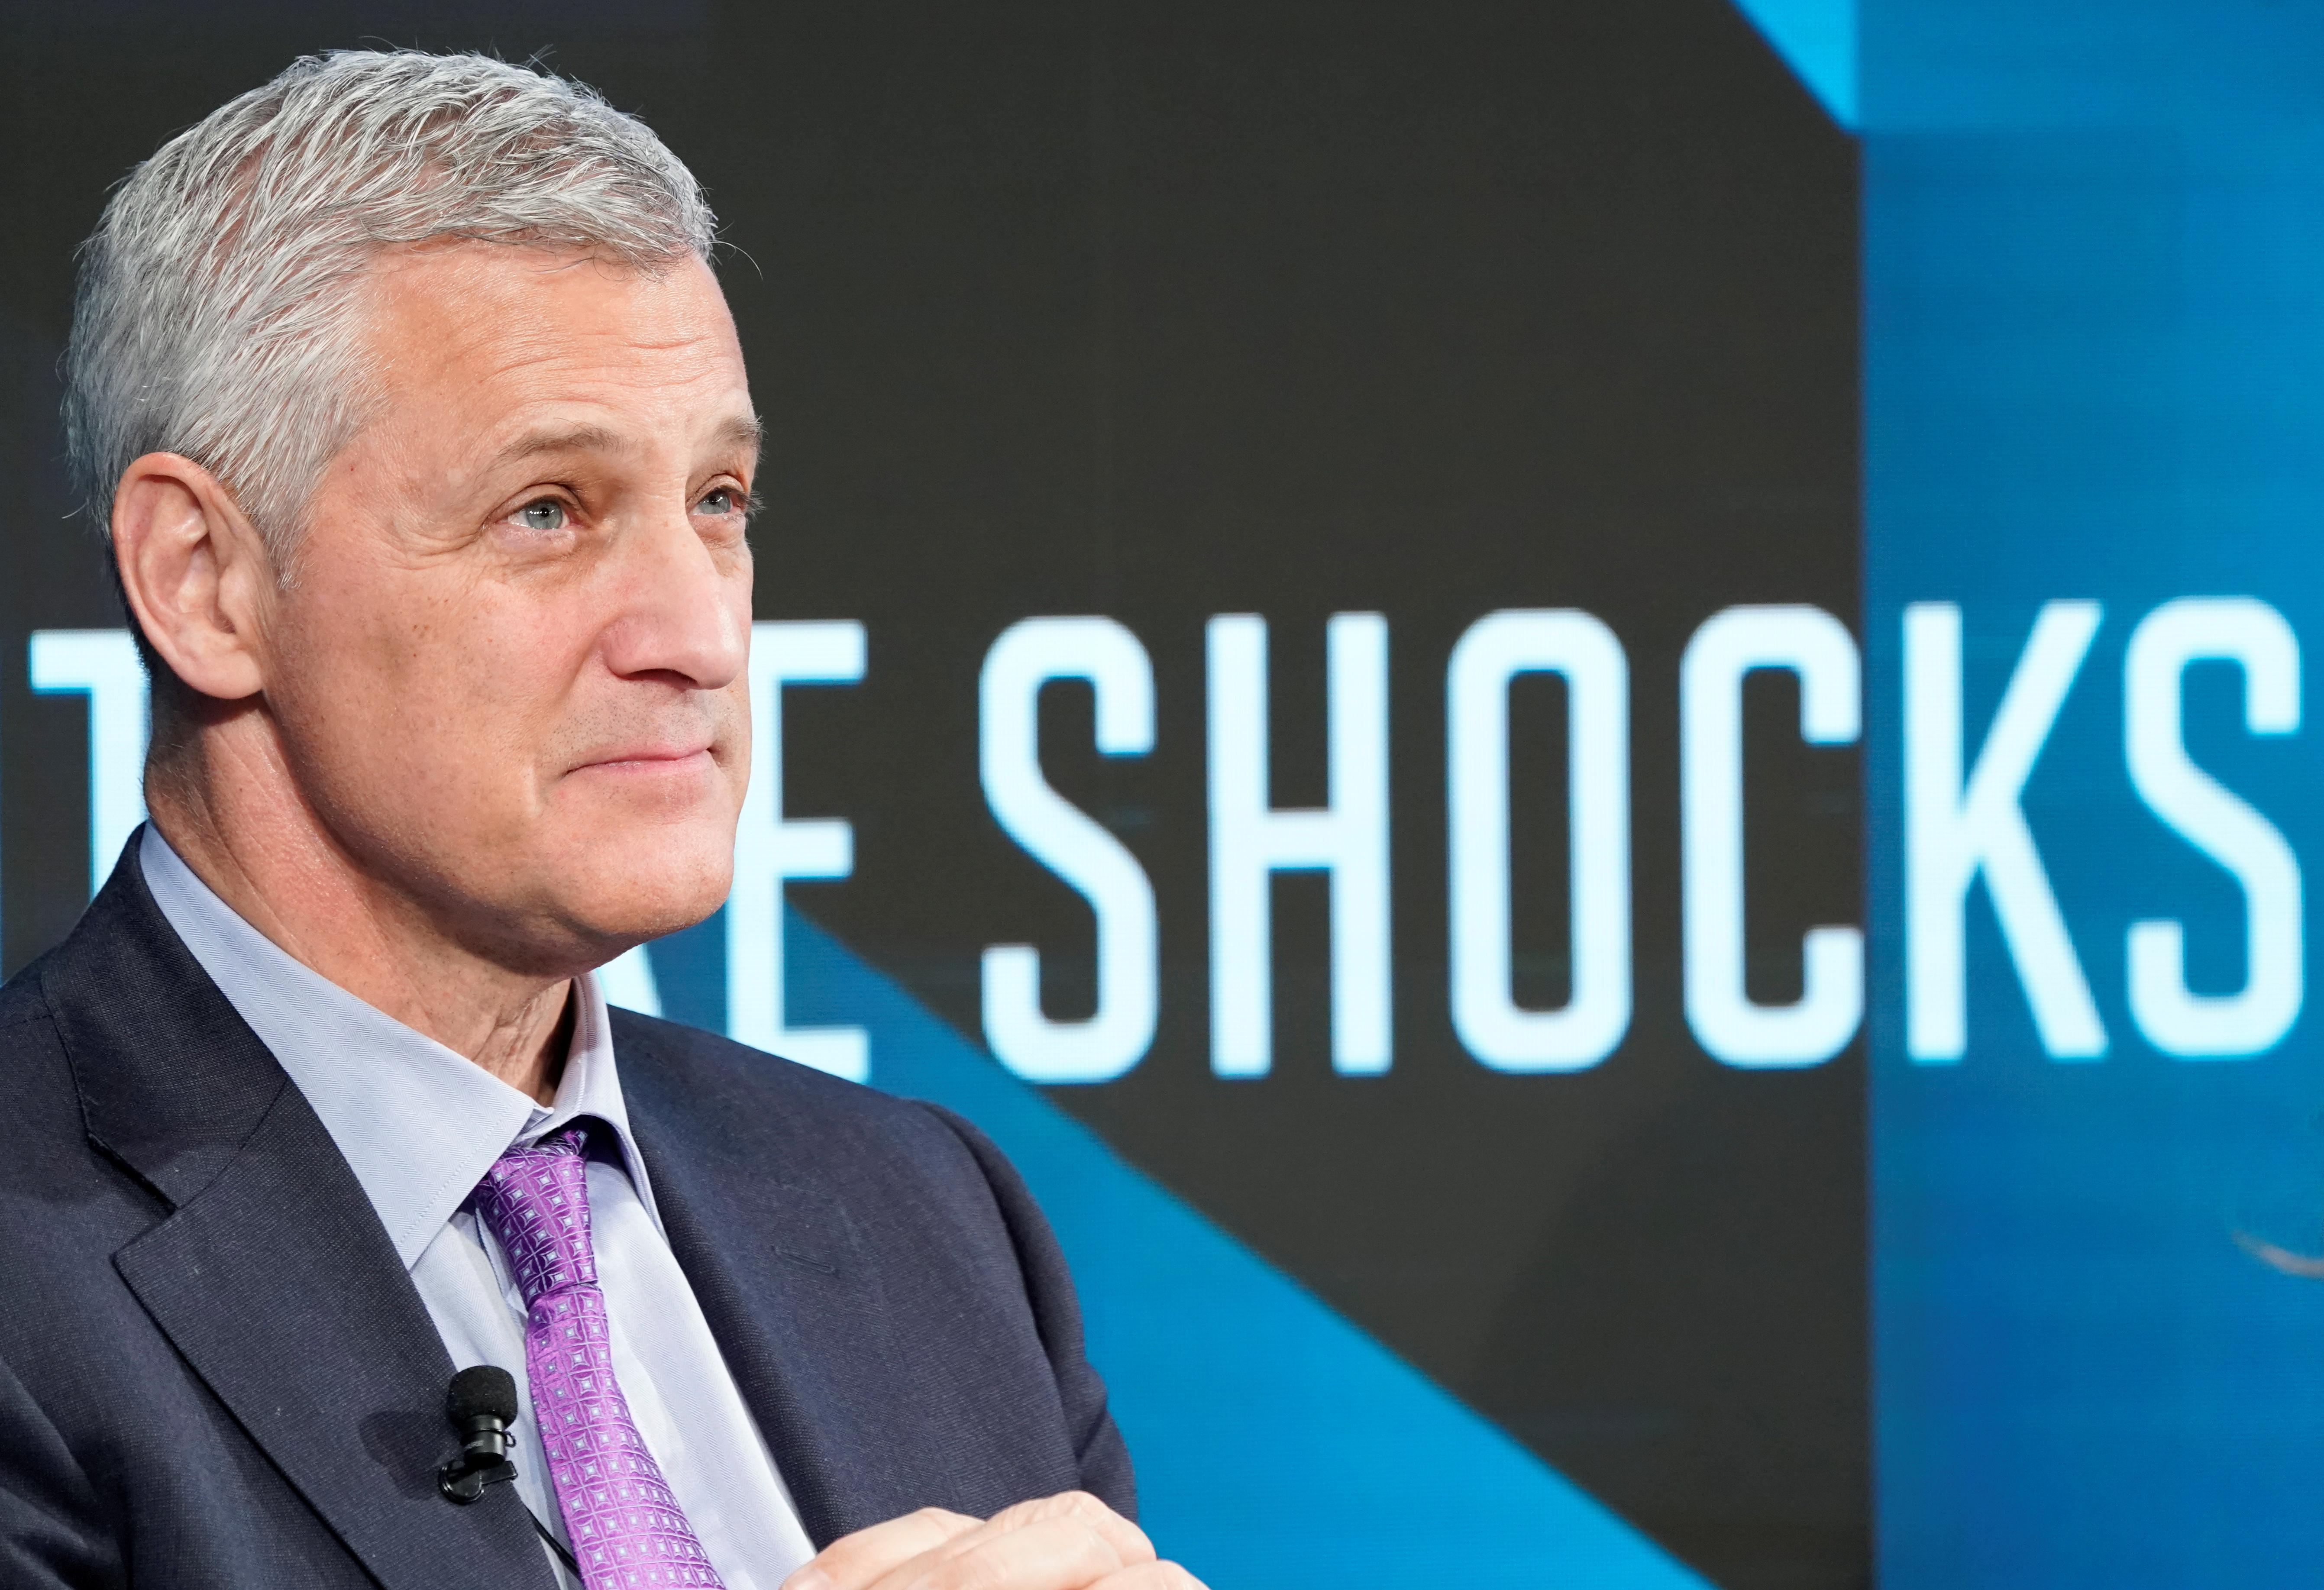 Bank CEO takes pay cut after investor rebellion